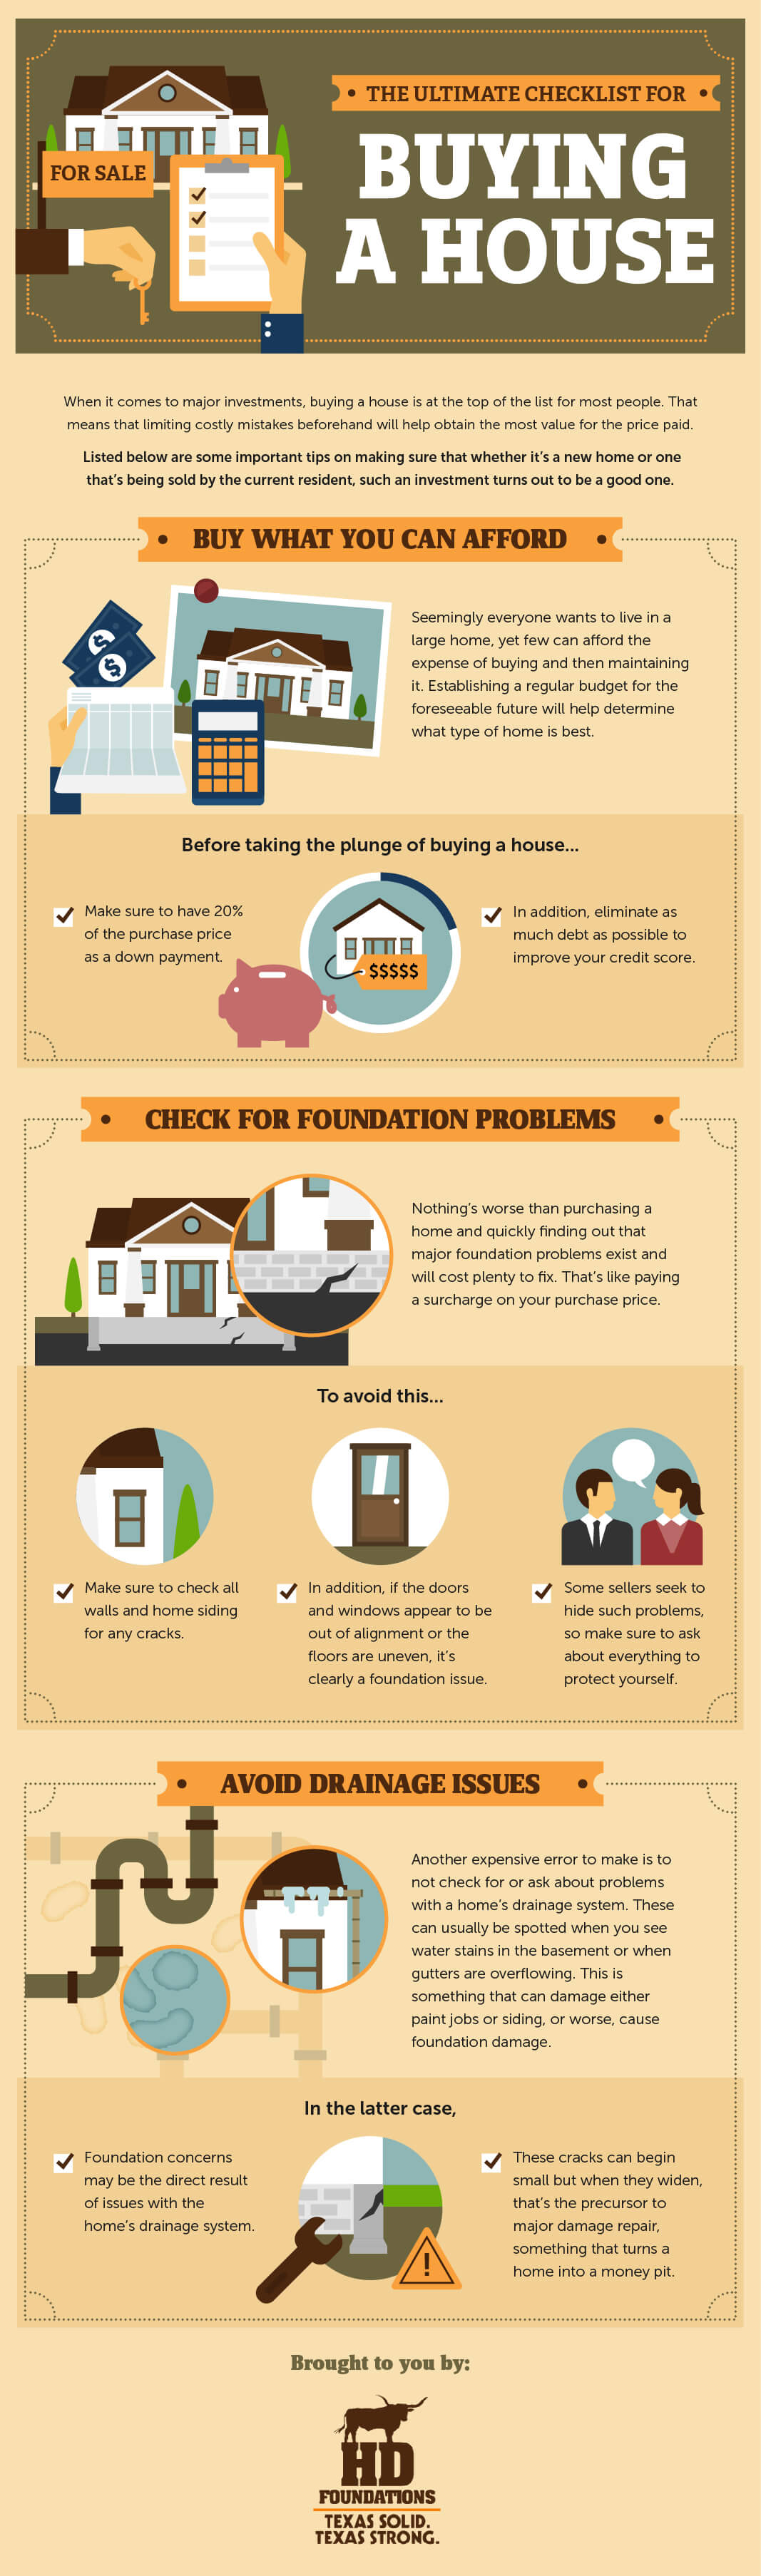 The ultimate checklist for buying a house hd foundations for Checklist for building a new house